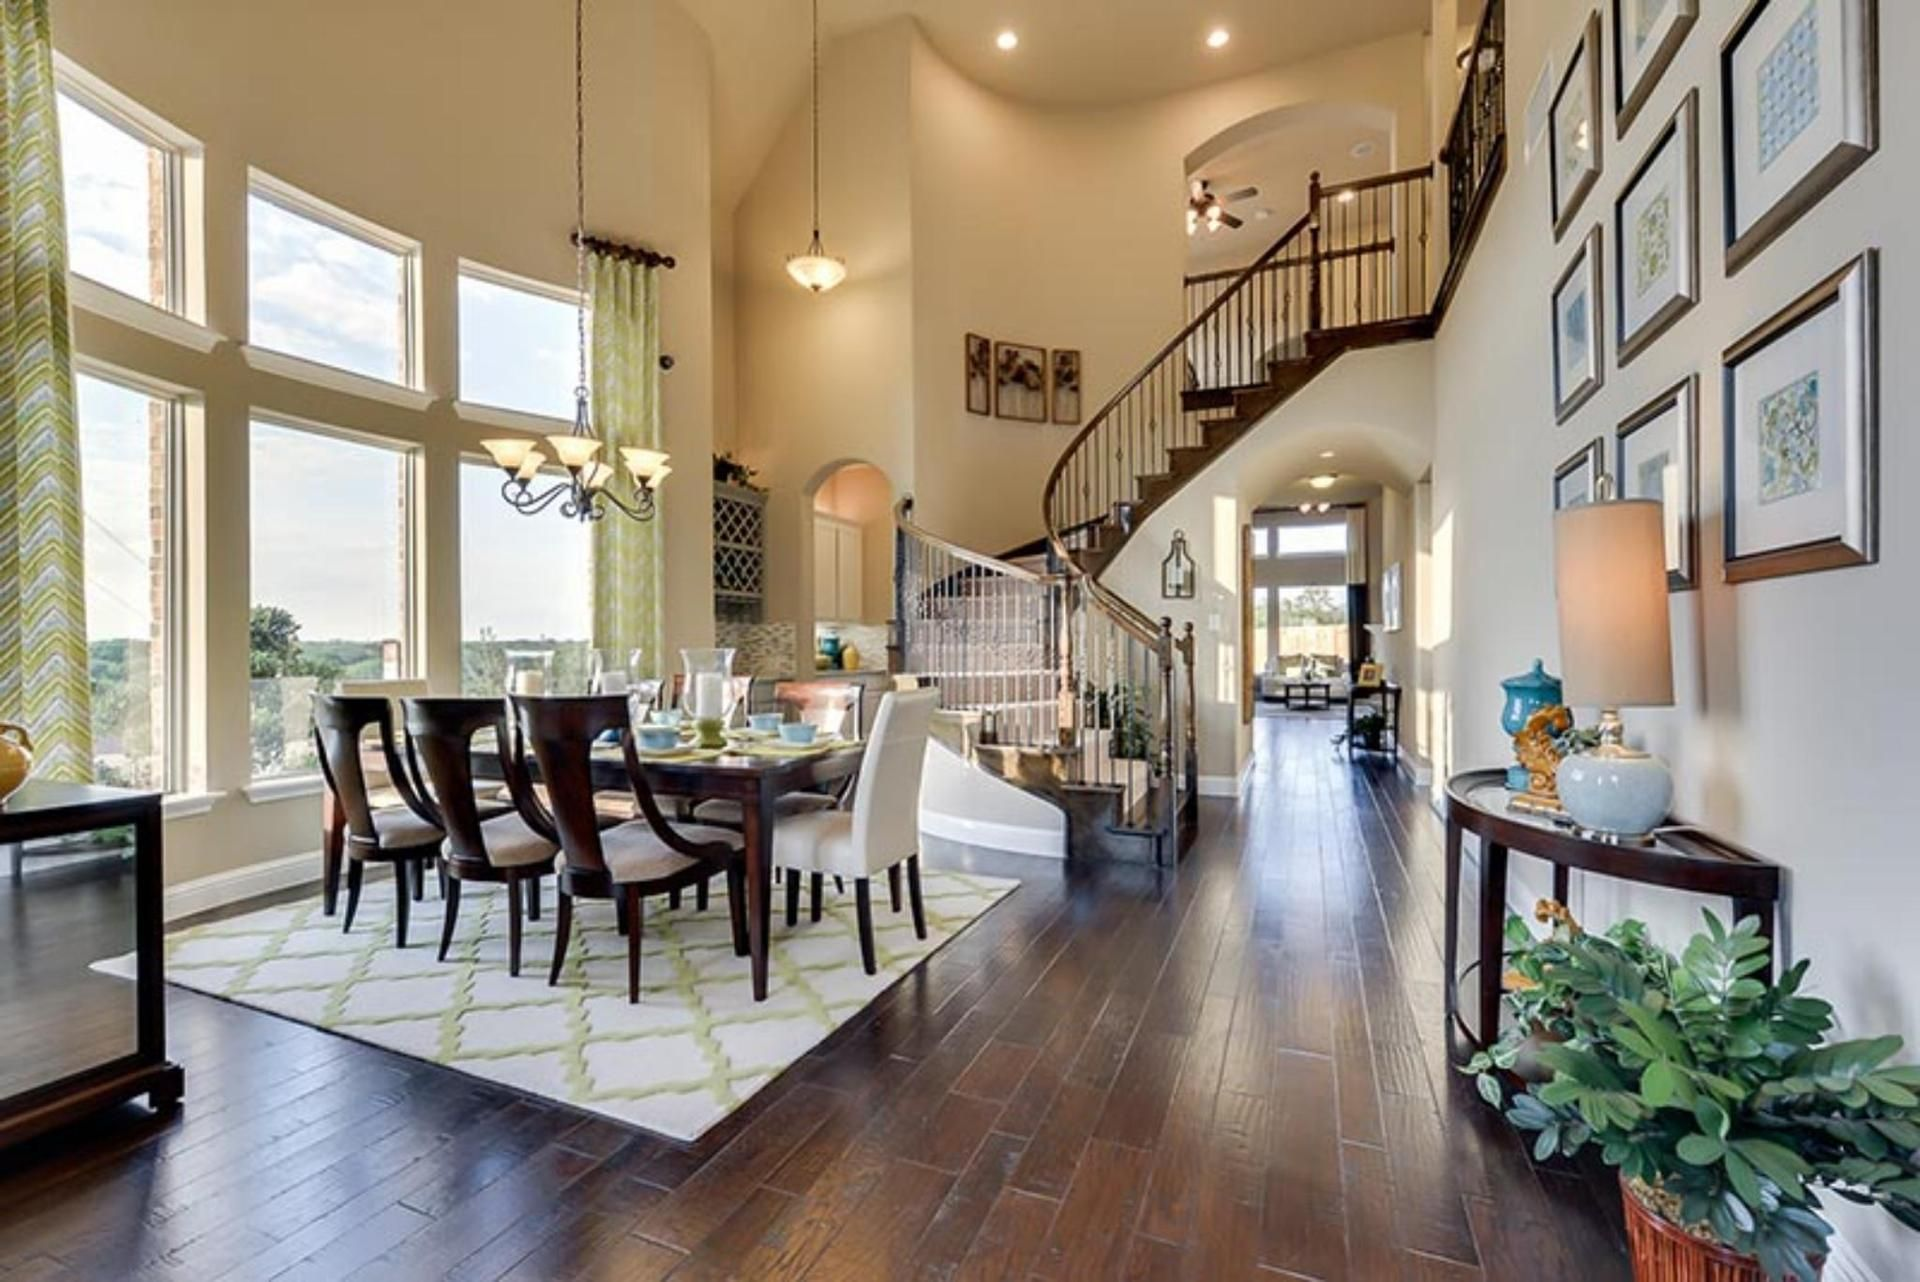 A Graceful Spiral Stairway Defines The Annabelle Plan New Home Built By Dunhill Homes Heath Golf Yacht Club Tx